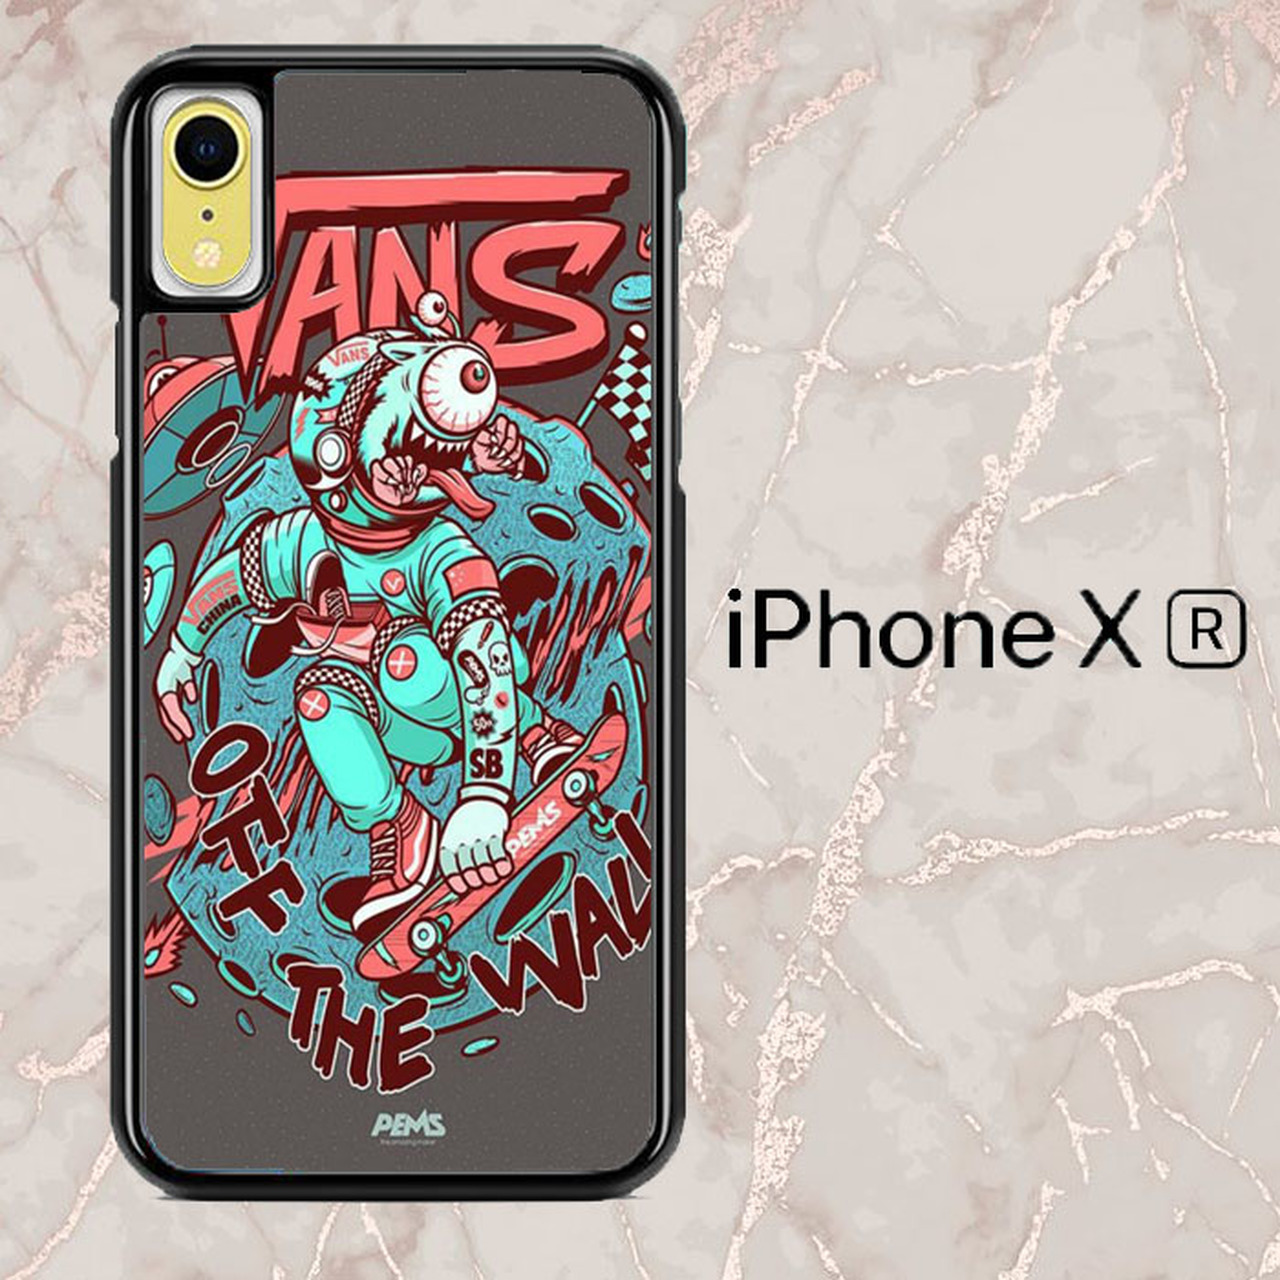 Vans Wallpaper For Iphone posted by ...